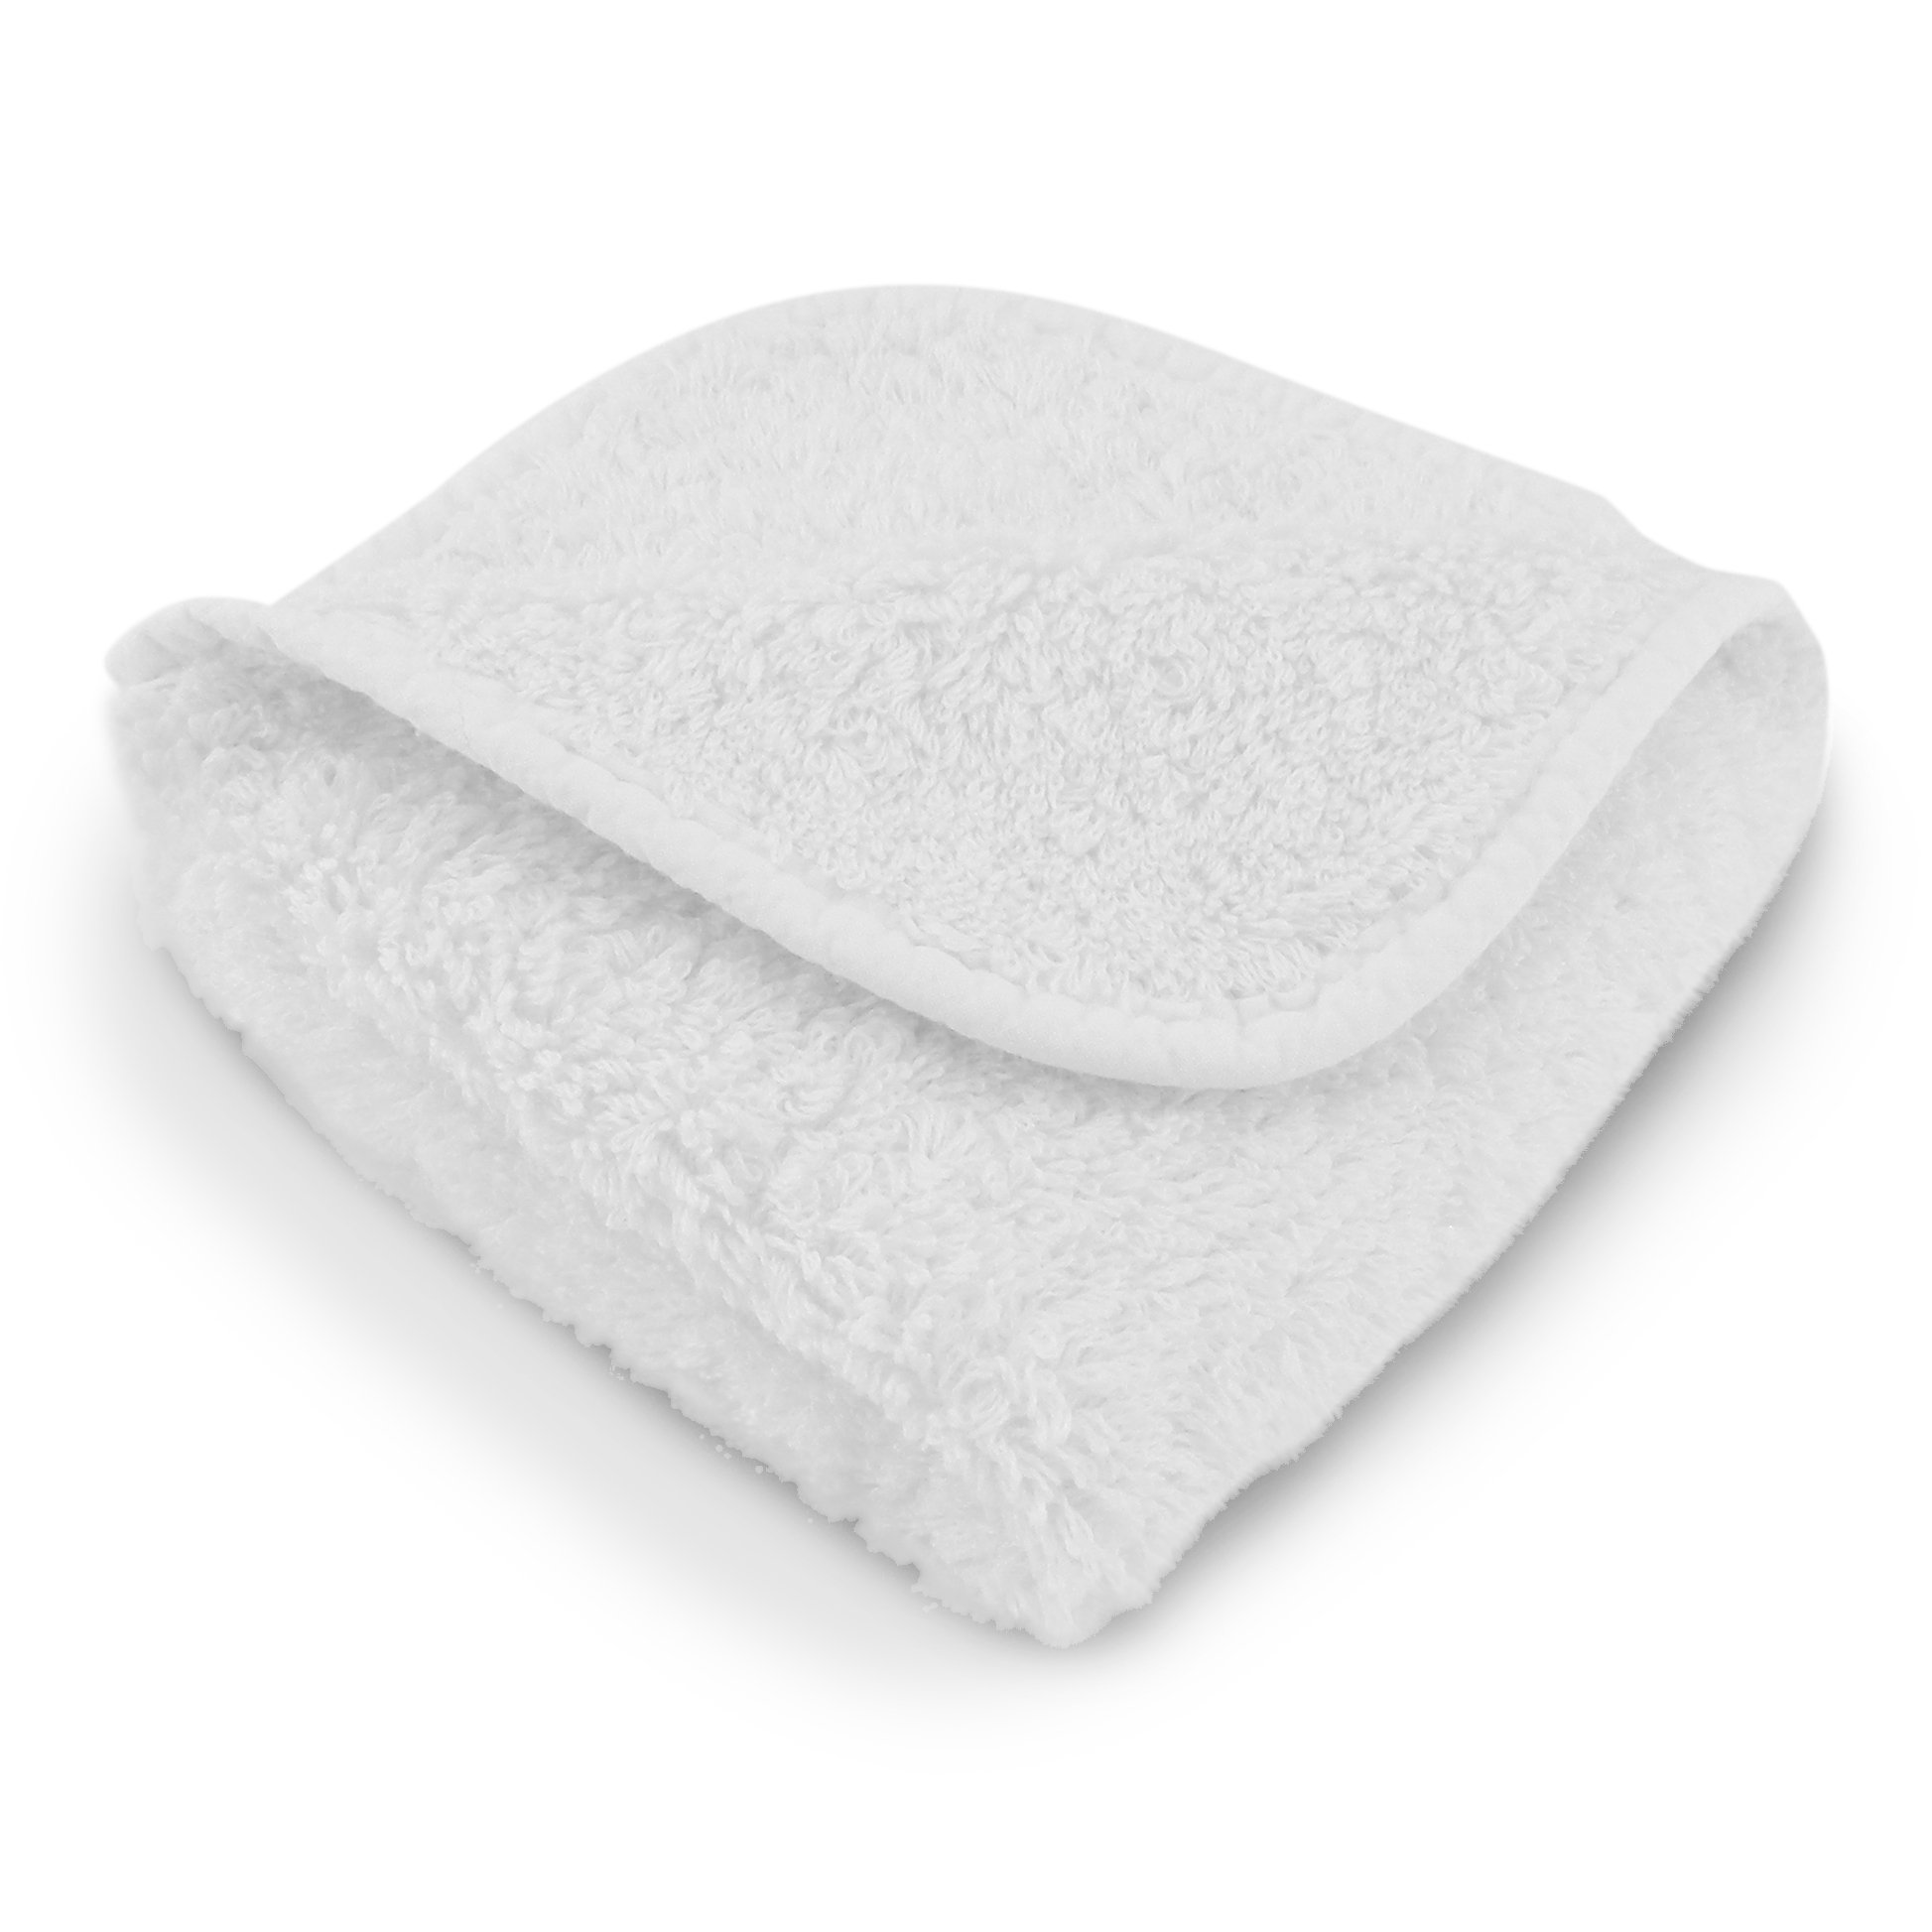 Abyss Super Pile Bath Sheet (39'' x 59'') - White (100)